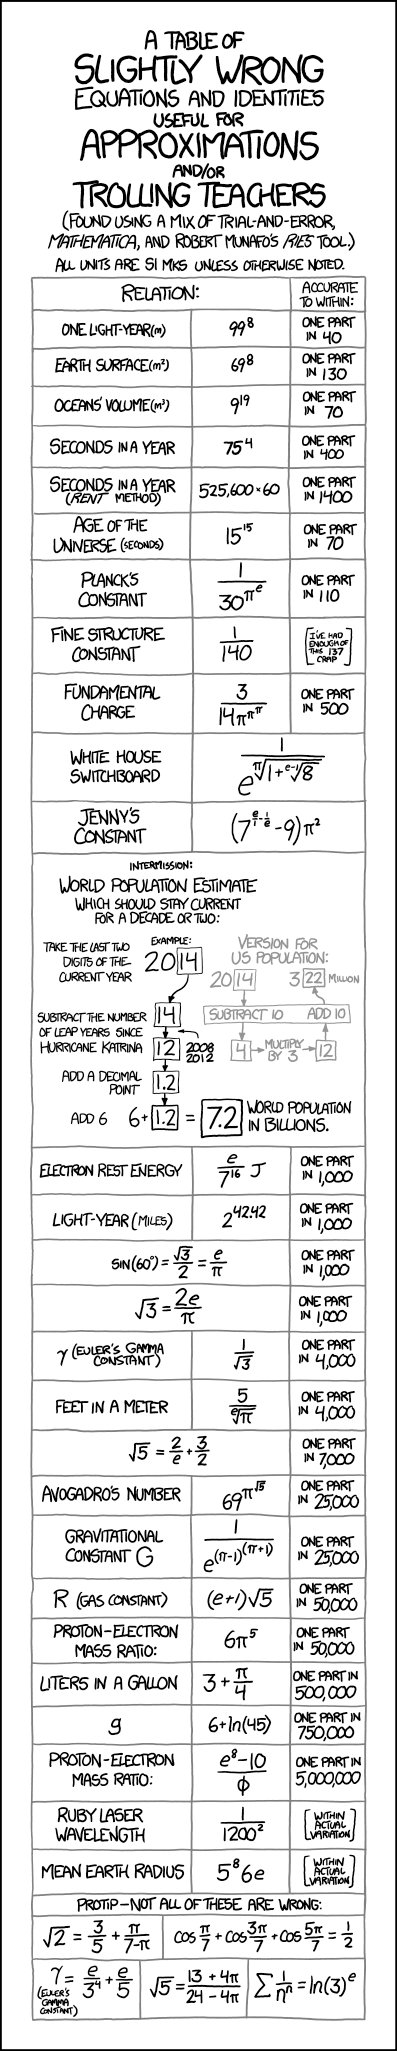 medium resolution of xkcd old xkcd flowingdata